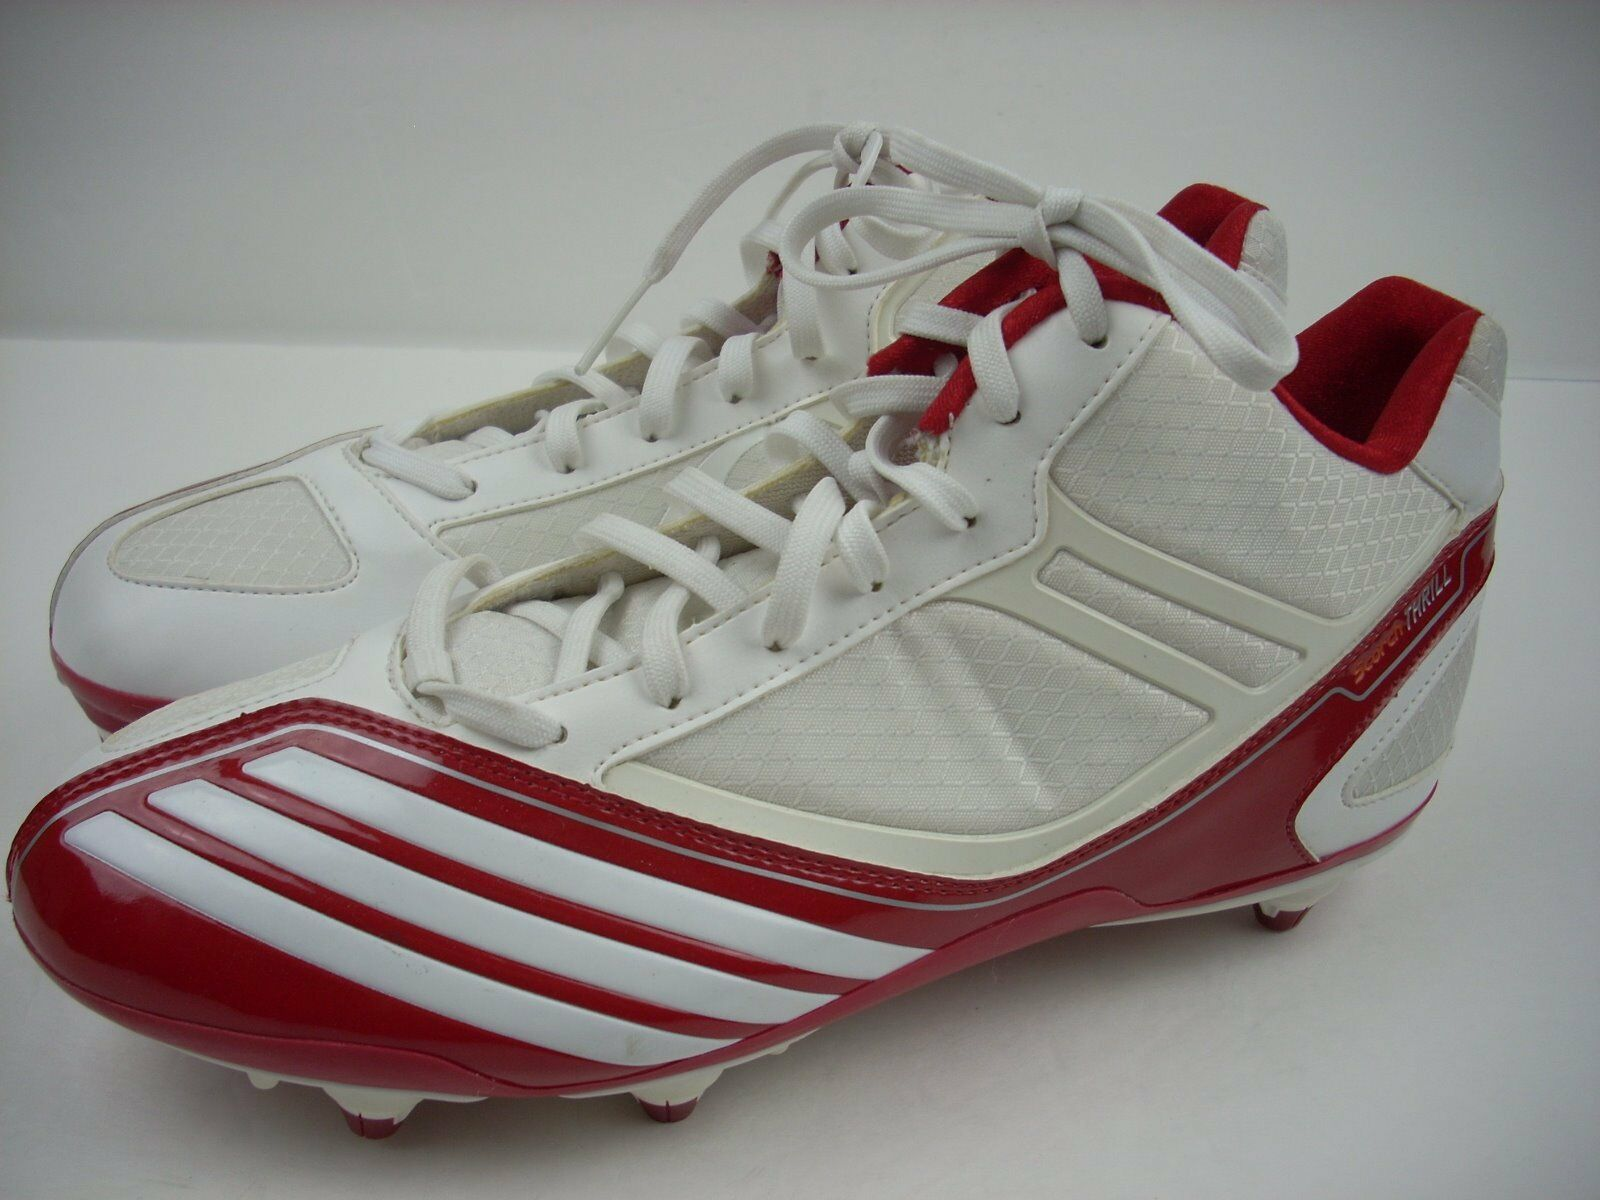 2d87a8776 NEW ADIDAS Football shoes US Red White Cleats Thrill Scorch 9 Lacrosse  nuesxm1727-Men